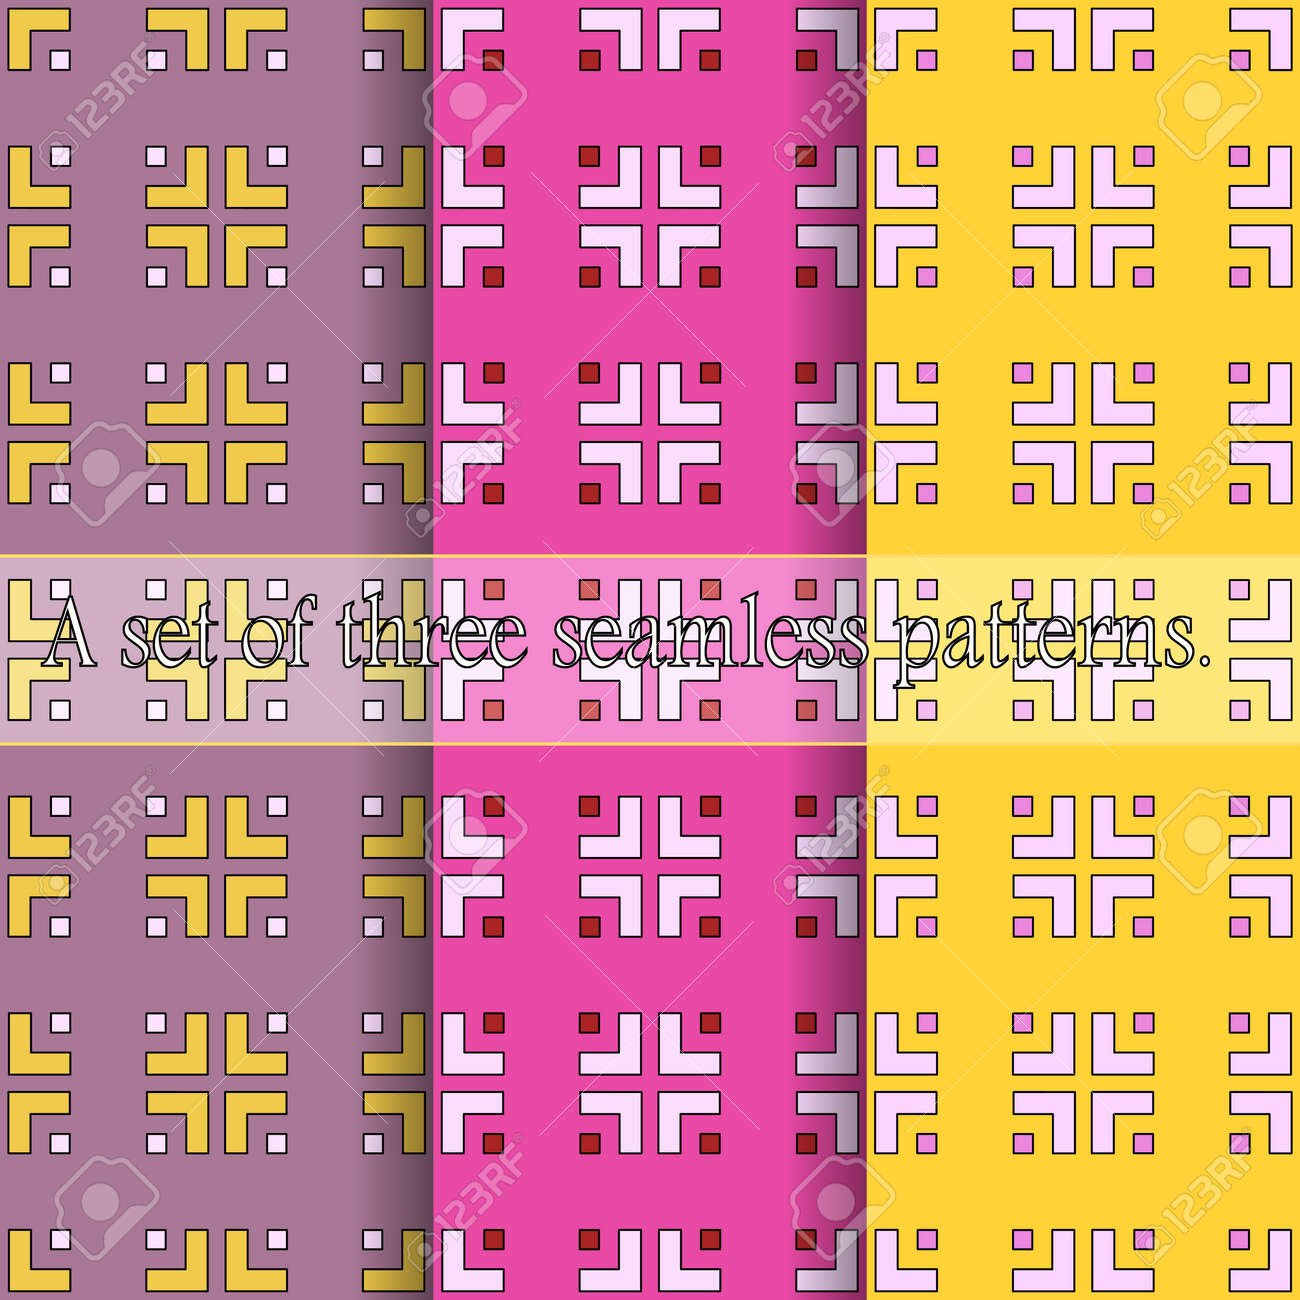 A set of three simple seamless geometric patterns. Bright prints from curly elements of a square shape. Great for decorating fabrics, textiles, gift wrapping, printed matter, interiors, advertising. - 167644306